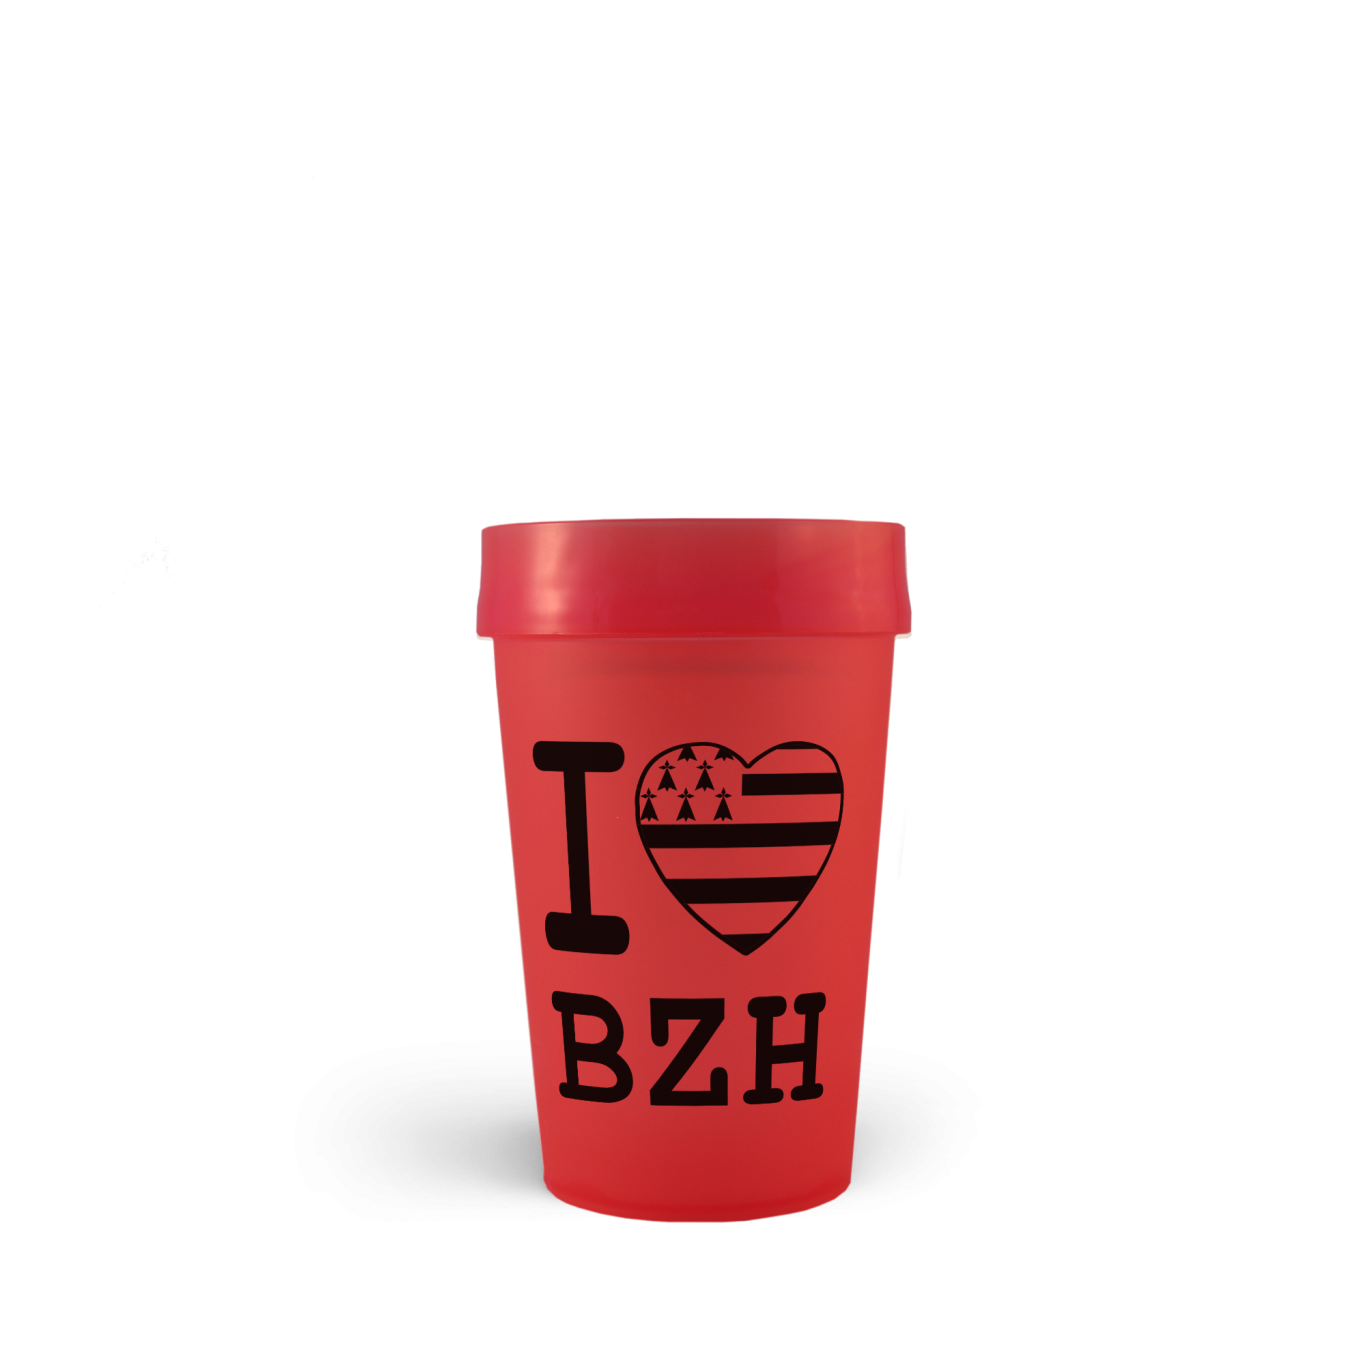 EP 25 generique i love BZH